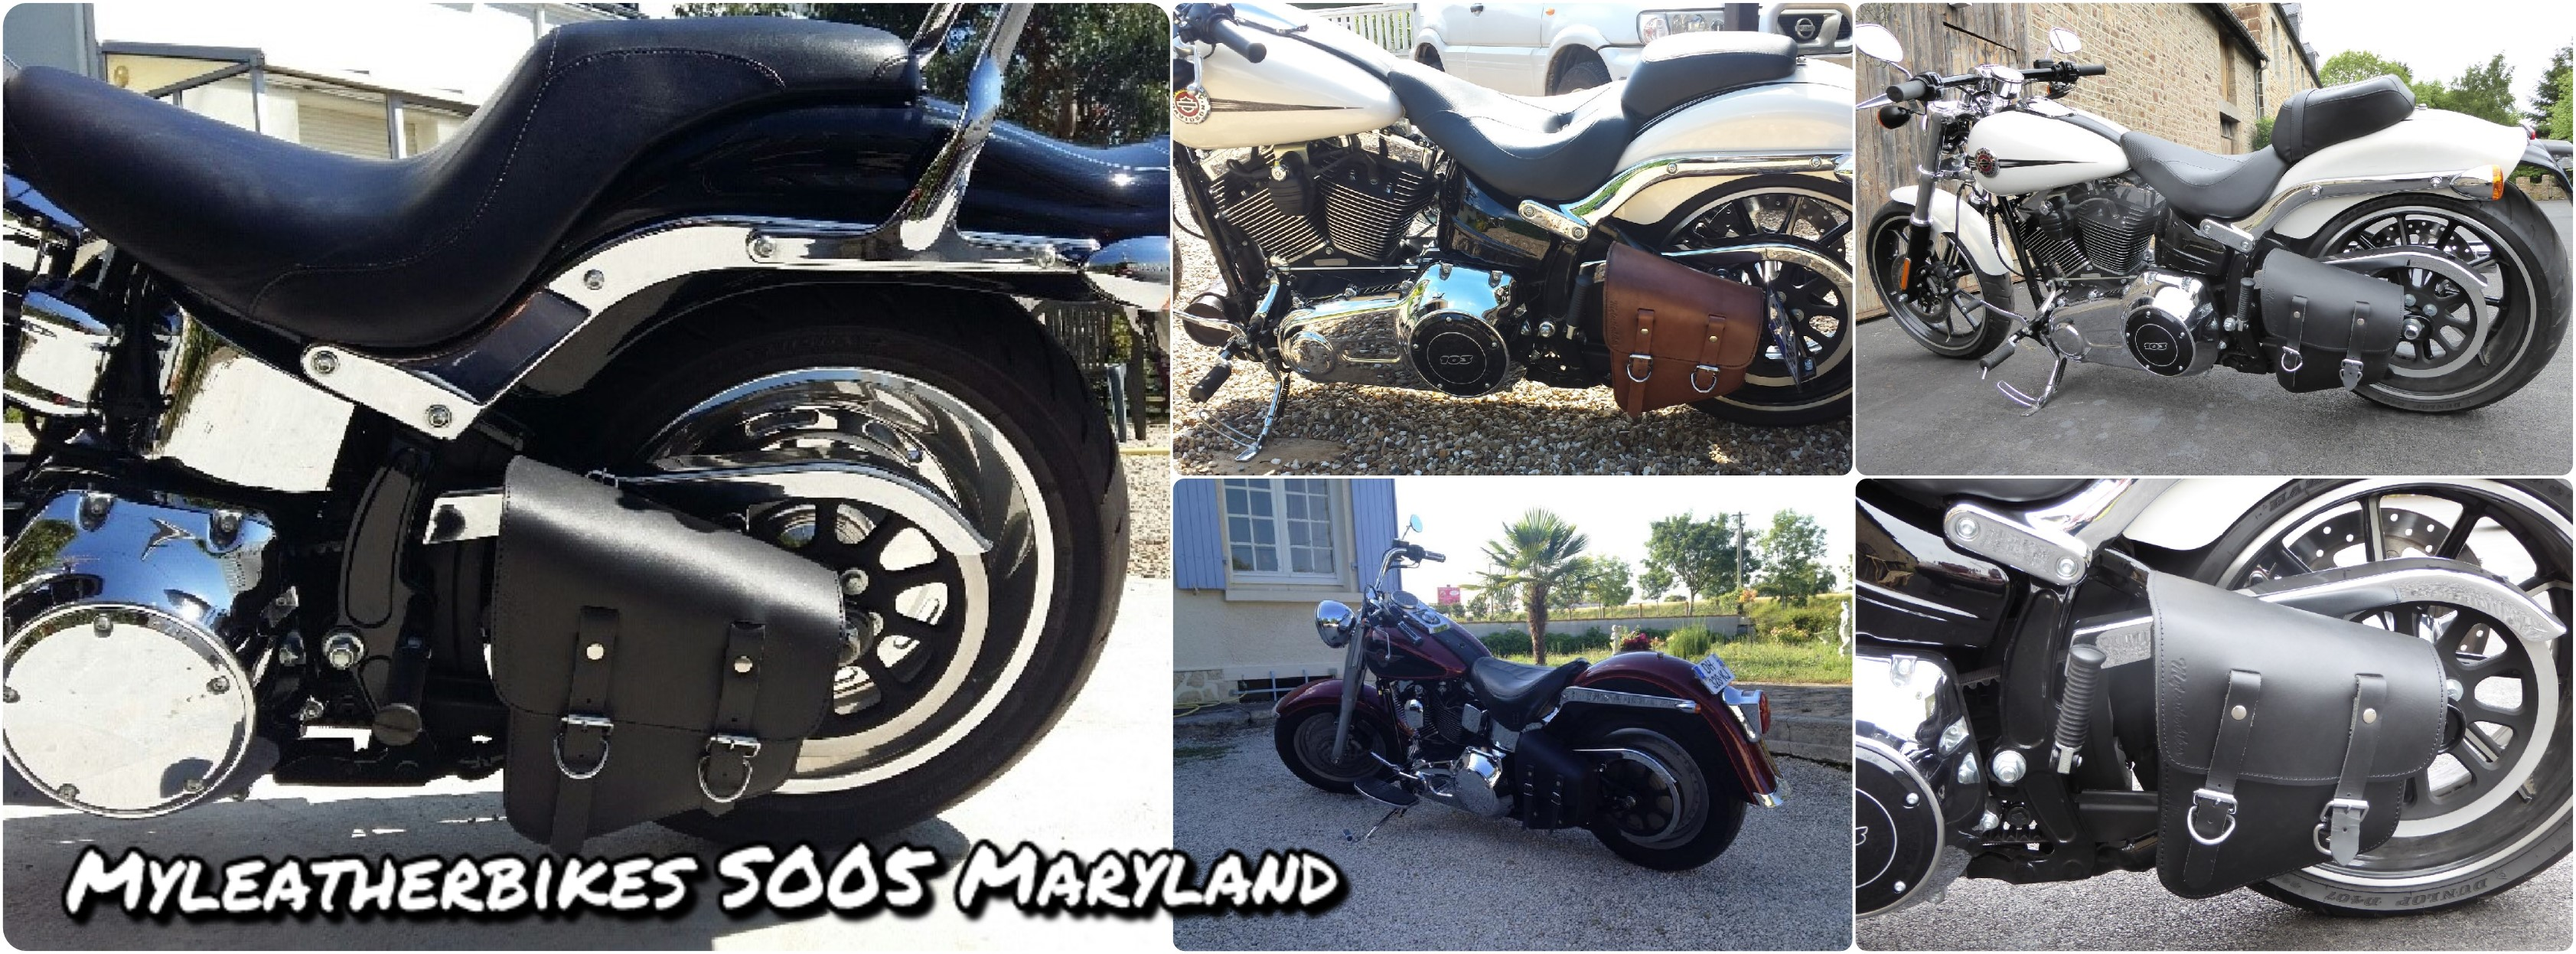 sacoche softail So05 Maryland